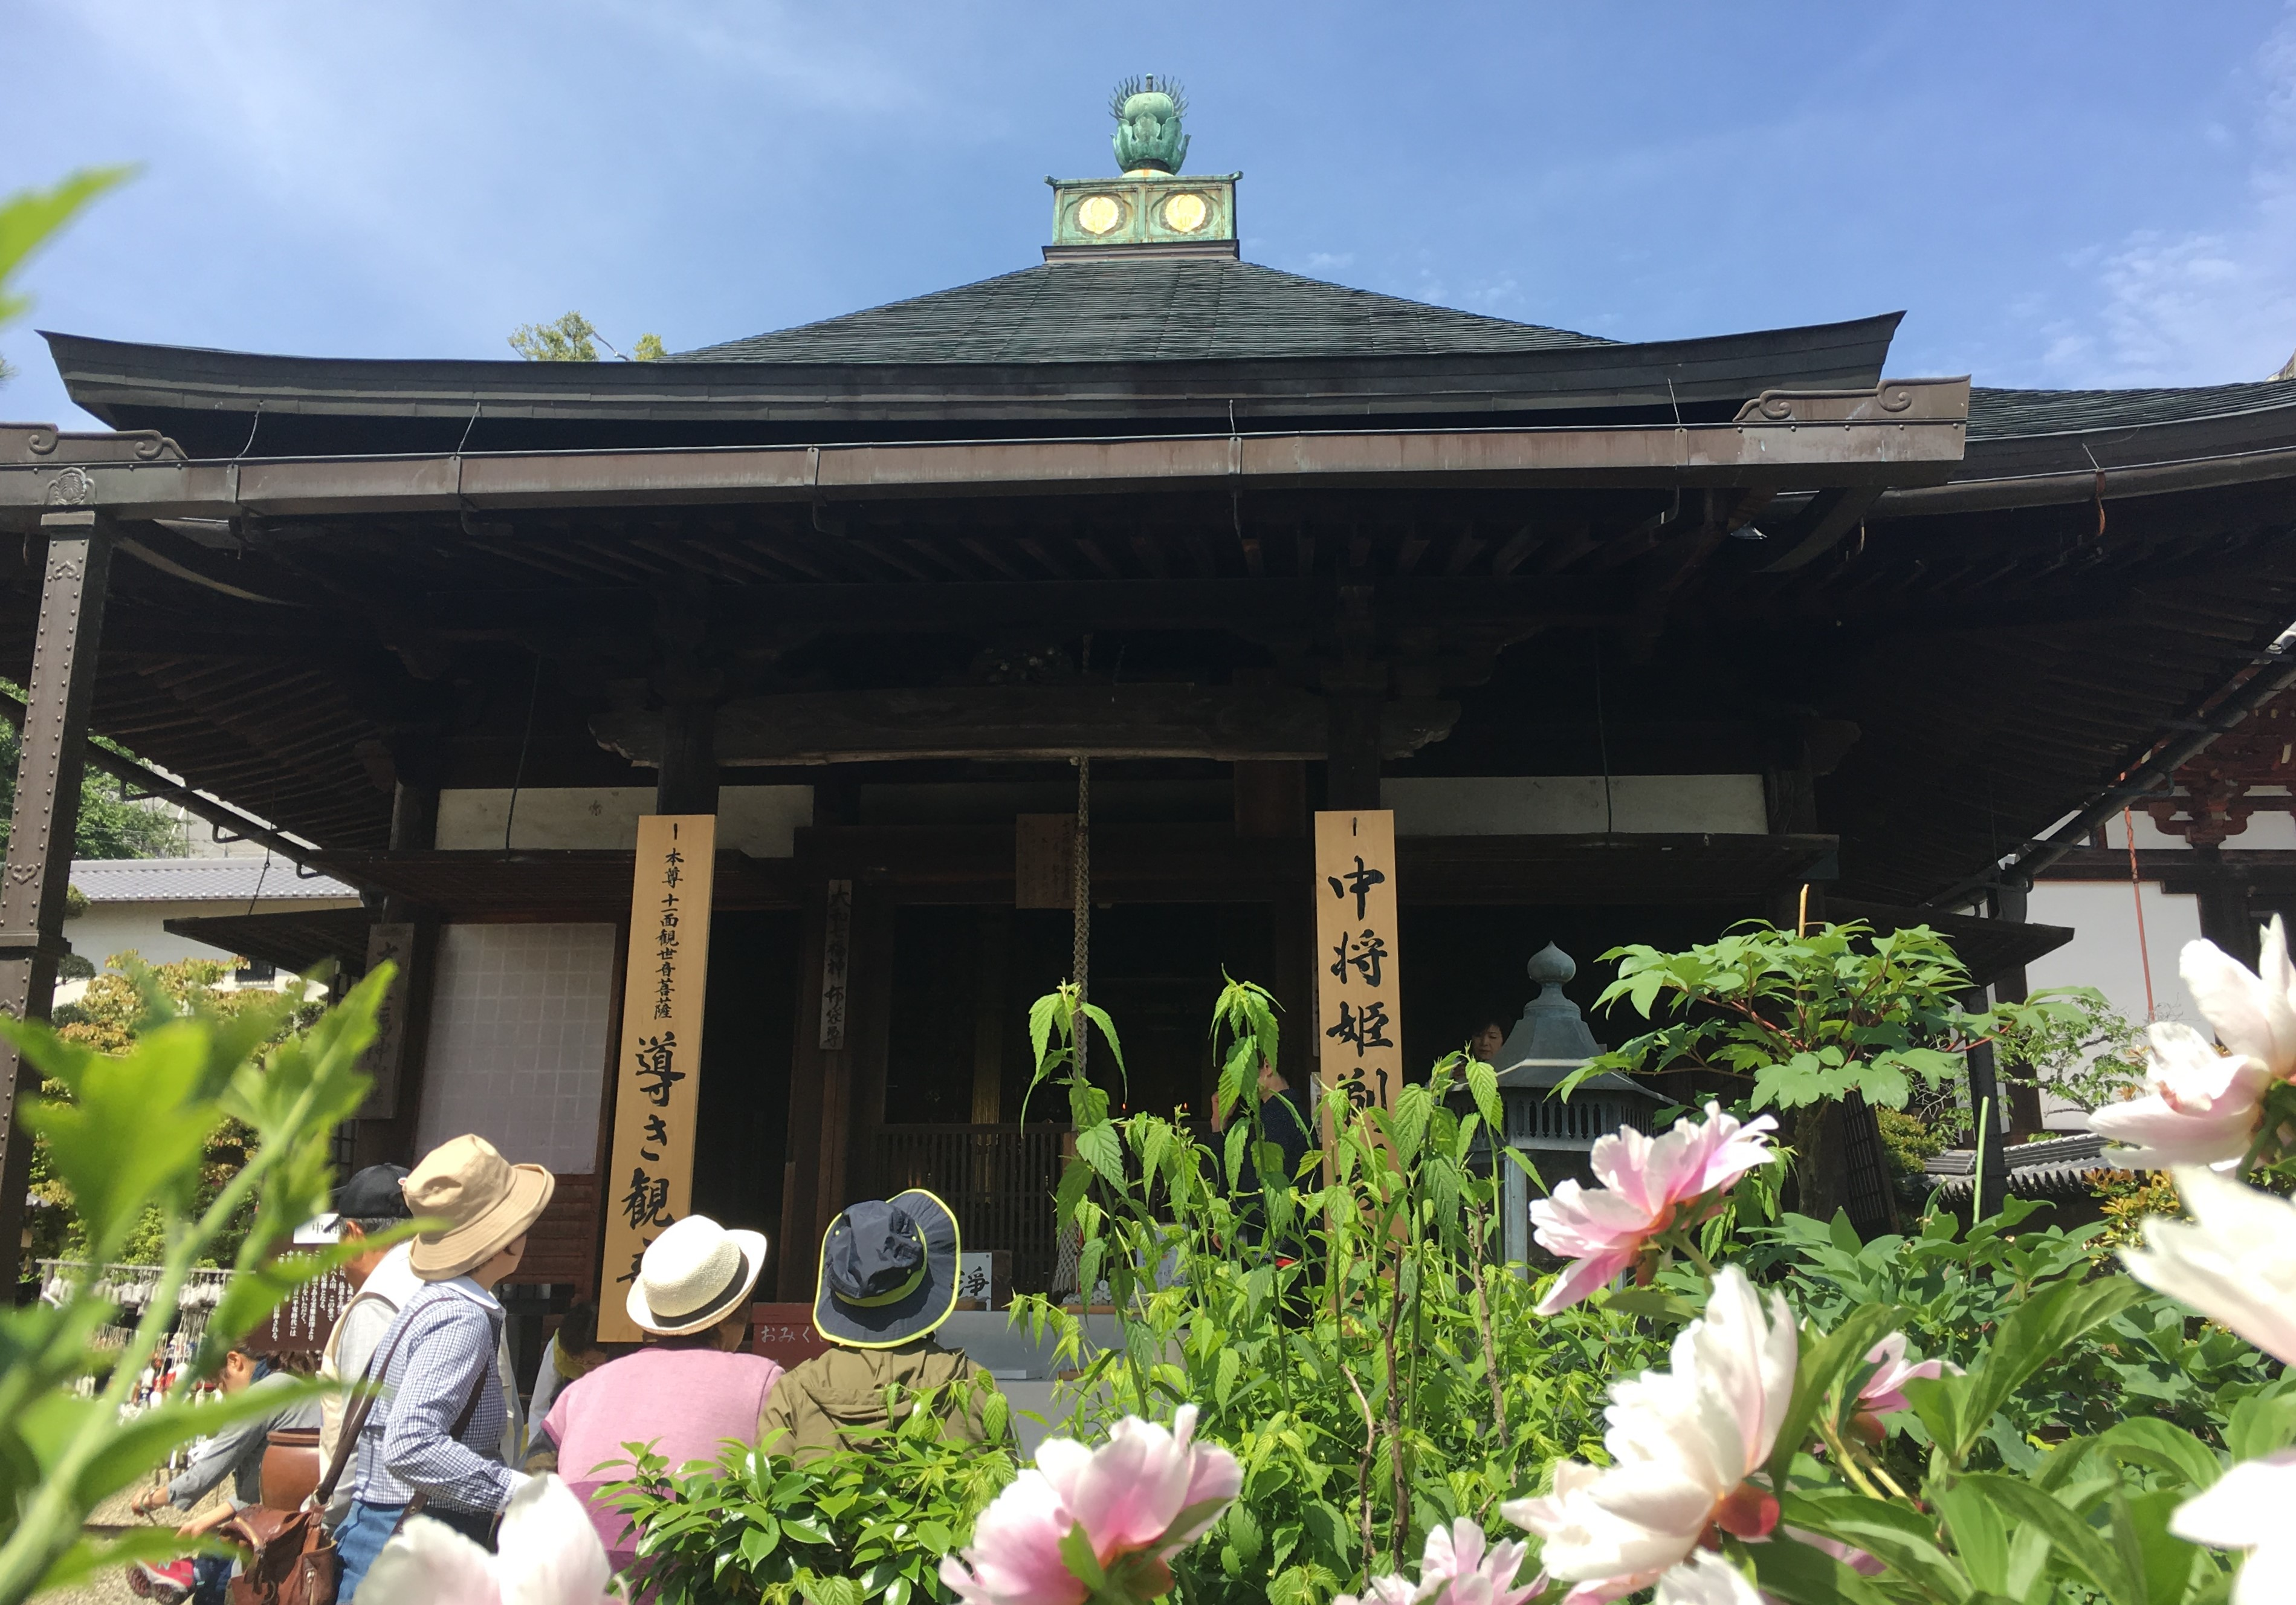 Mihatsu-do at the Nakano-bo with blooming flowers